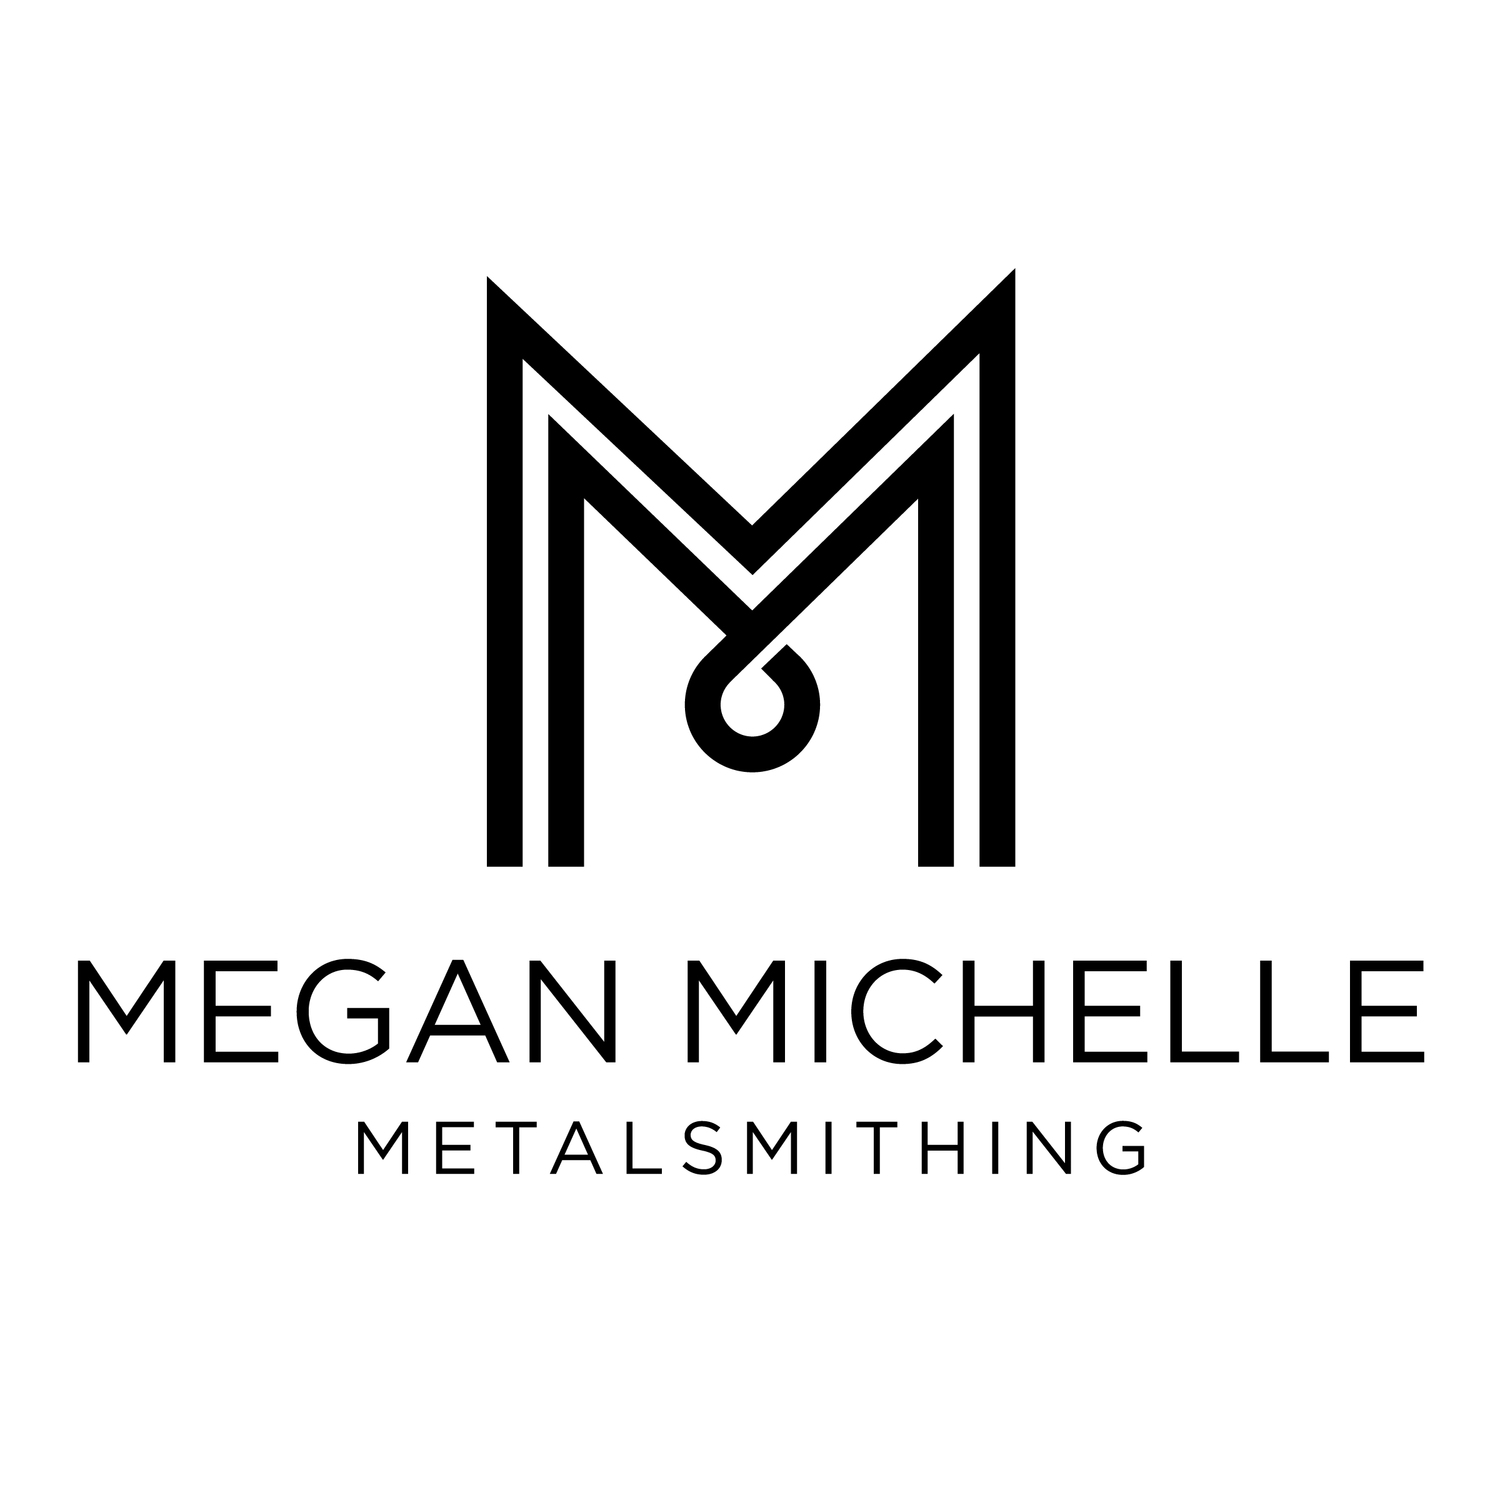 Megan Michelle Metalsmithing